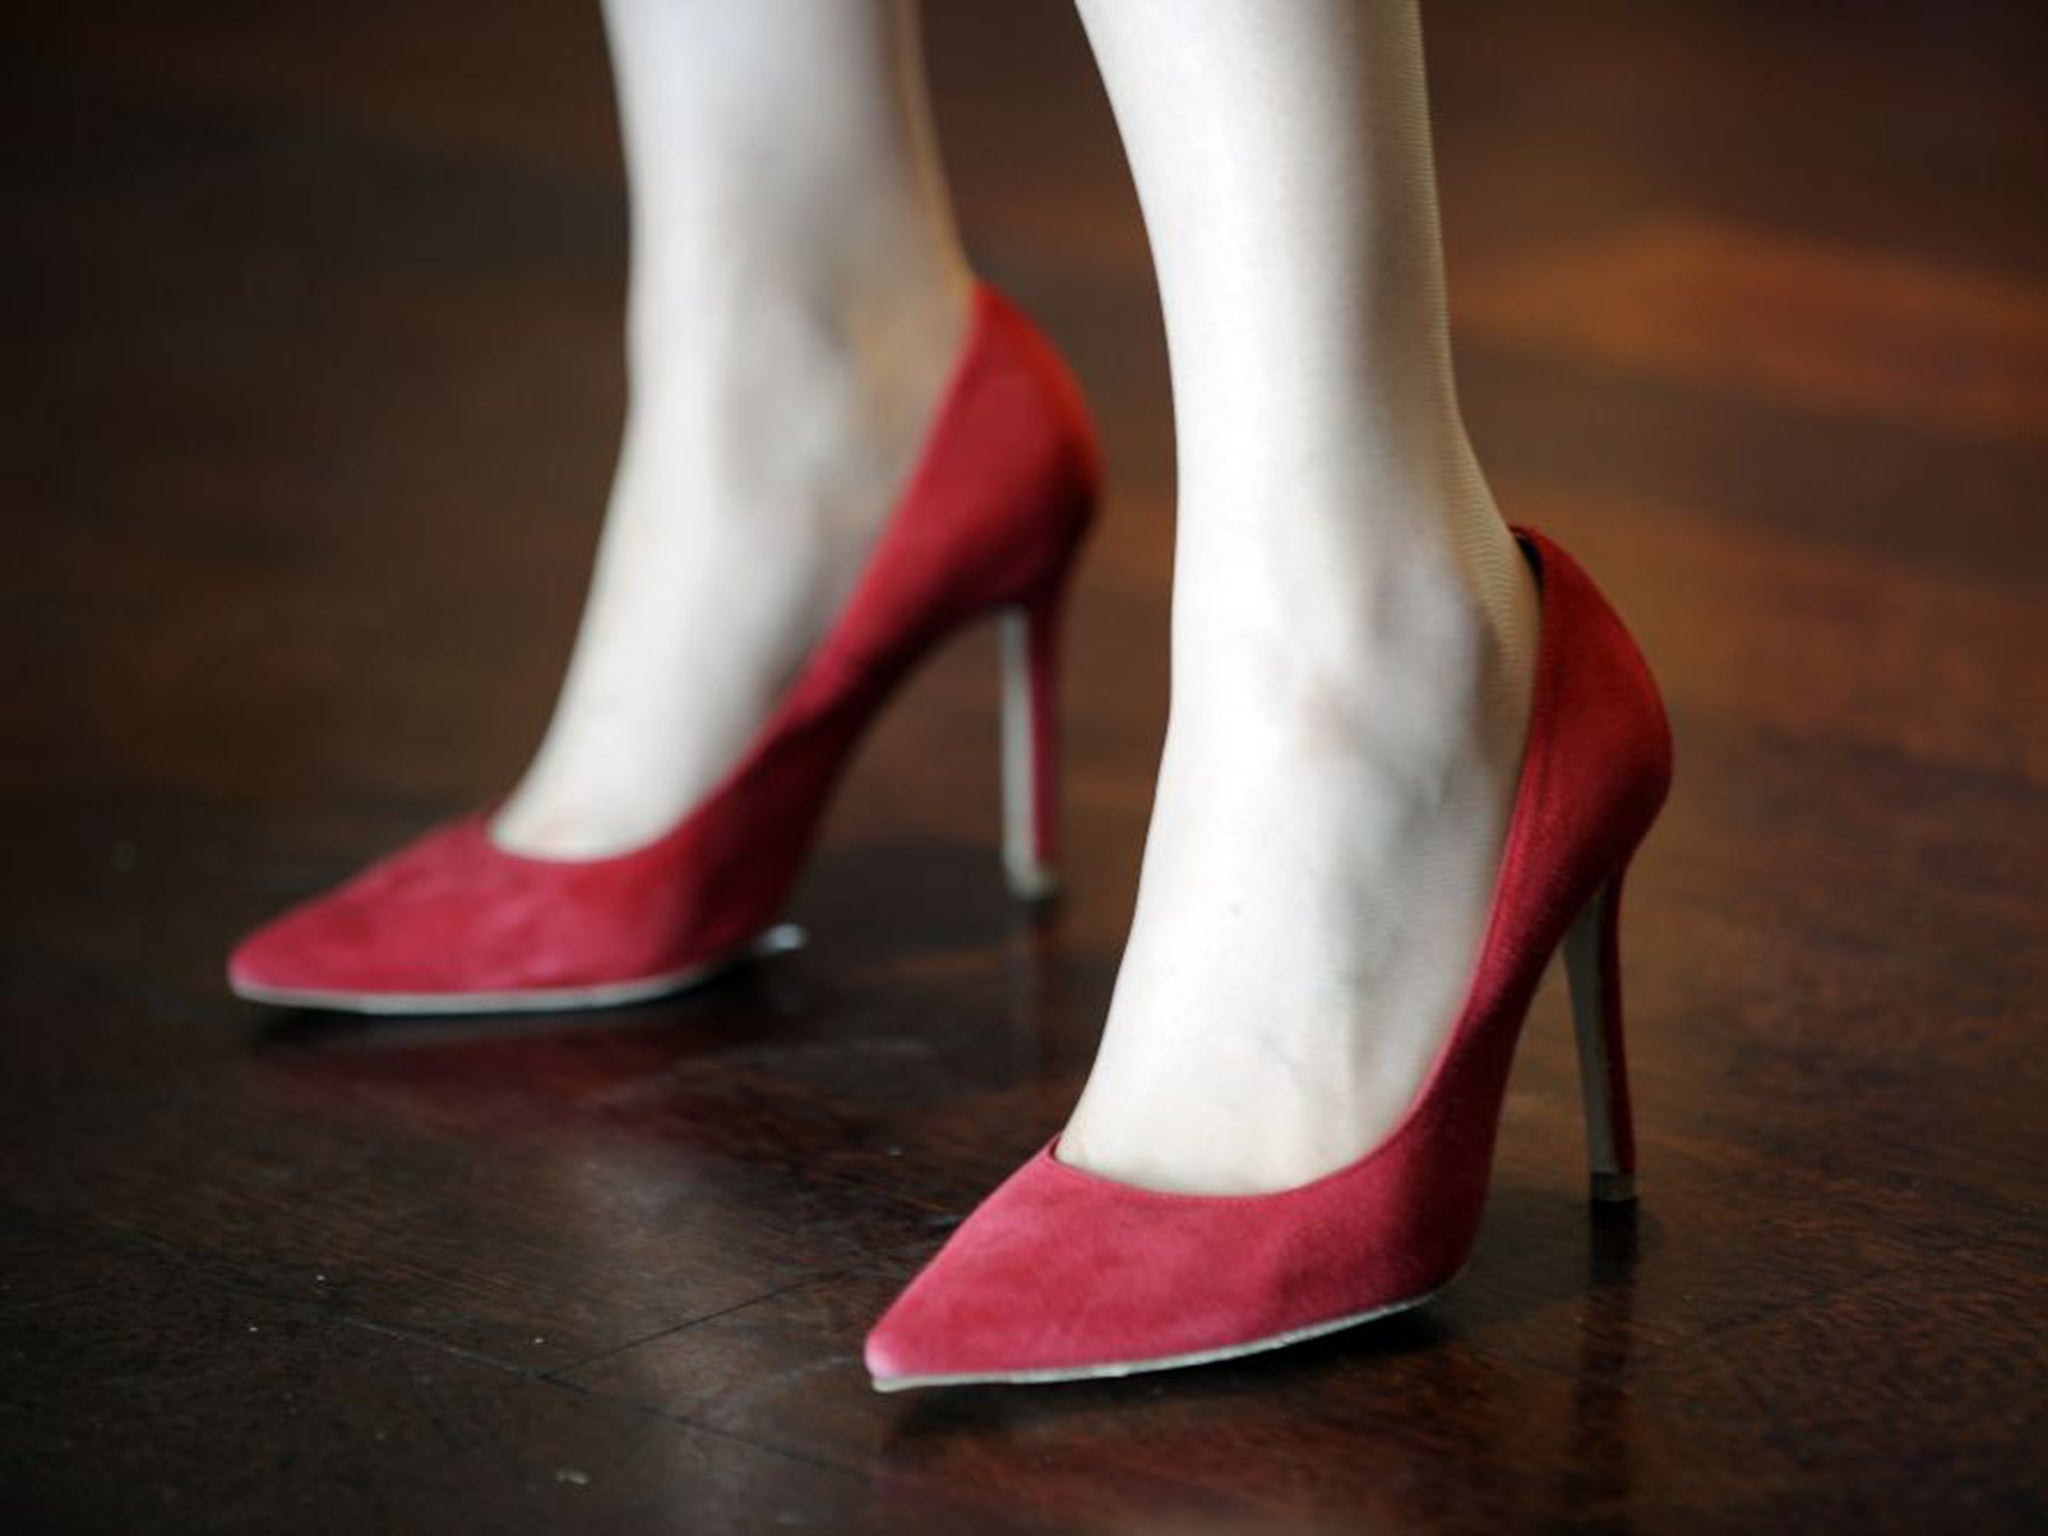 3dae237fd6d Asia · Japanese women urged to  empower  themselves by wearing high heels